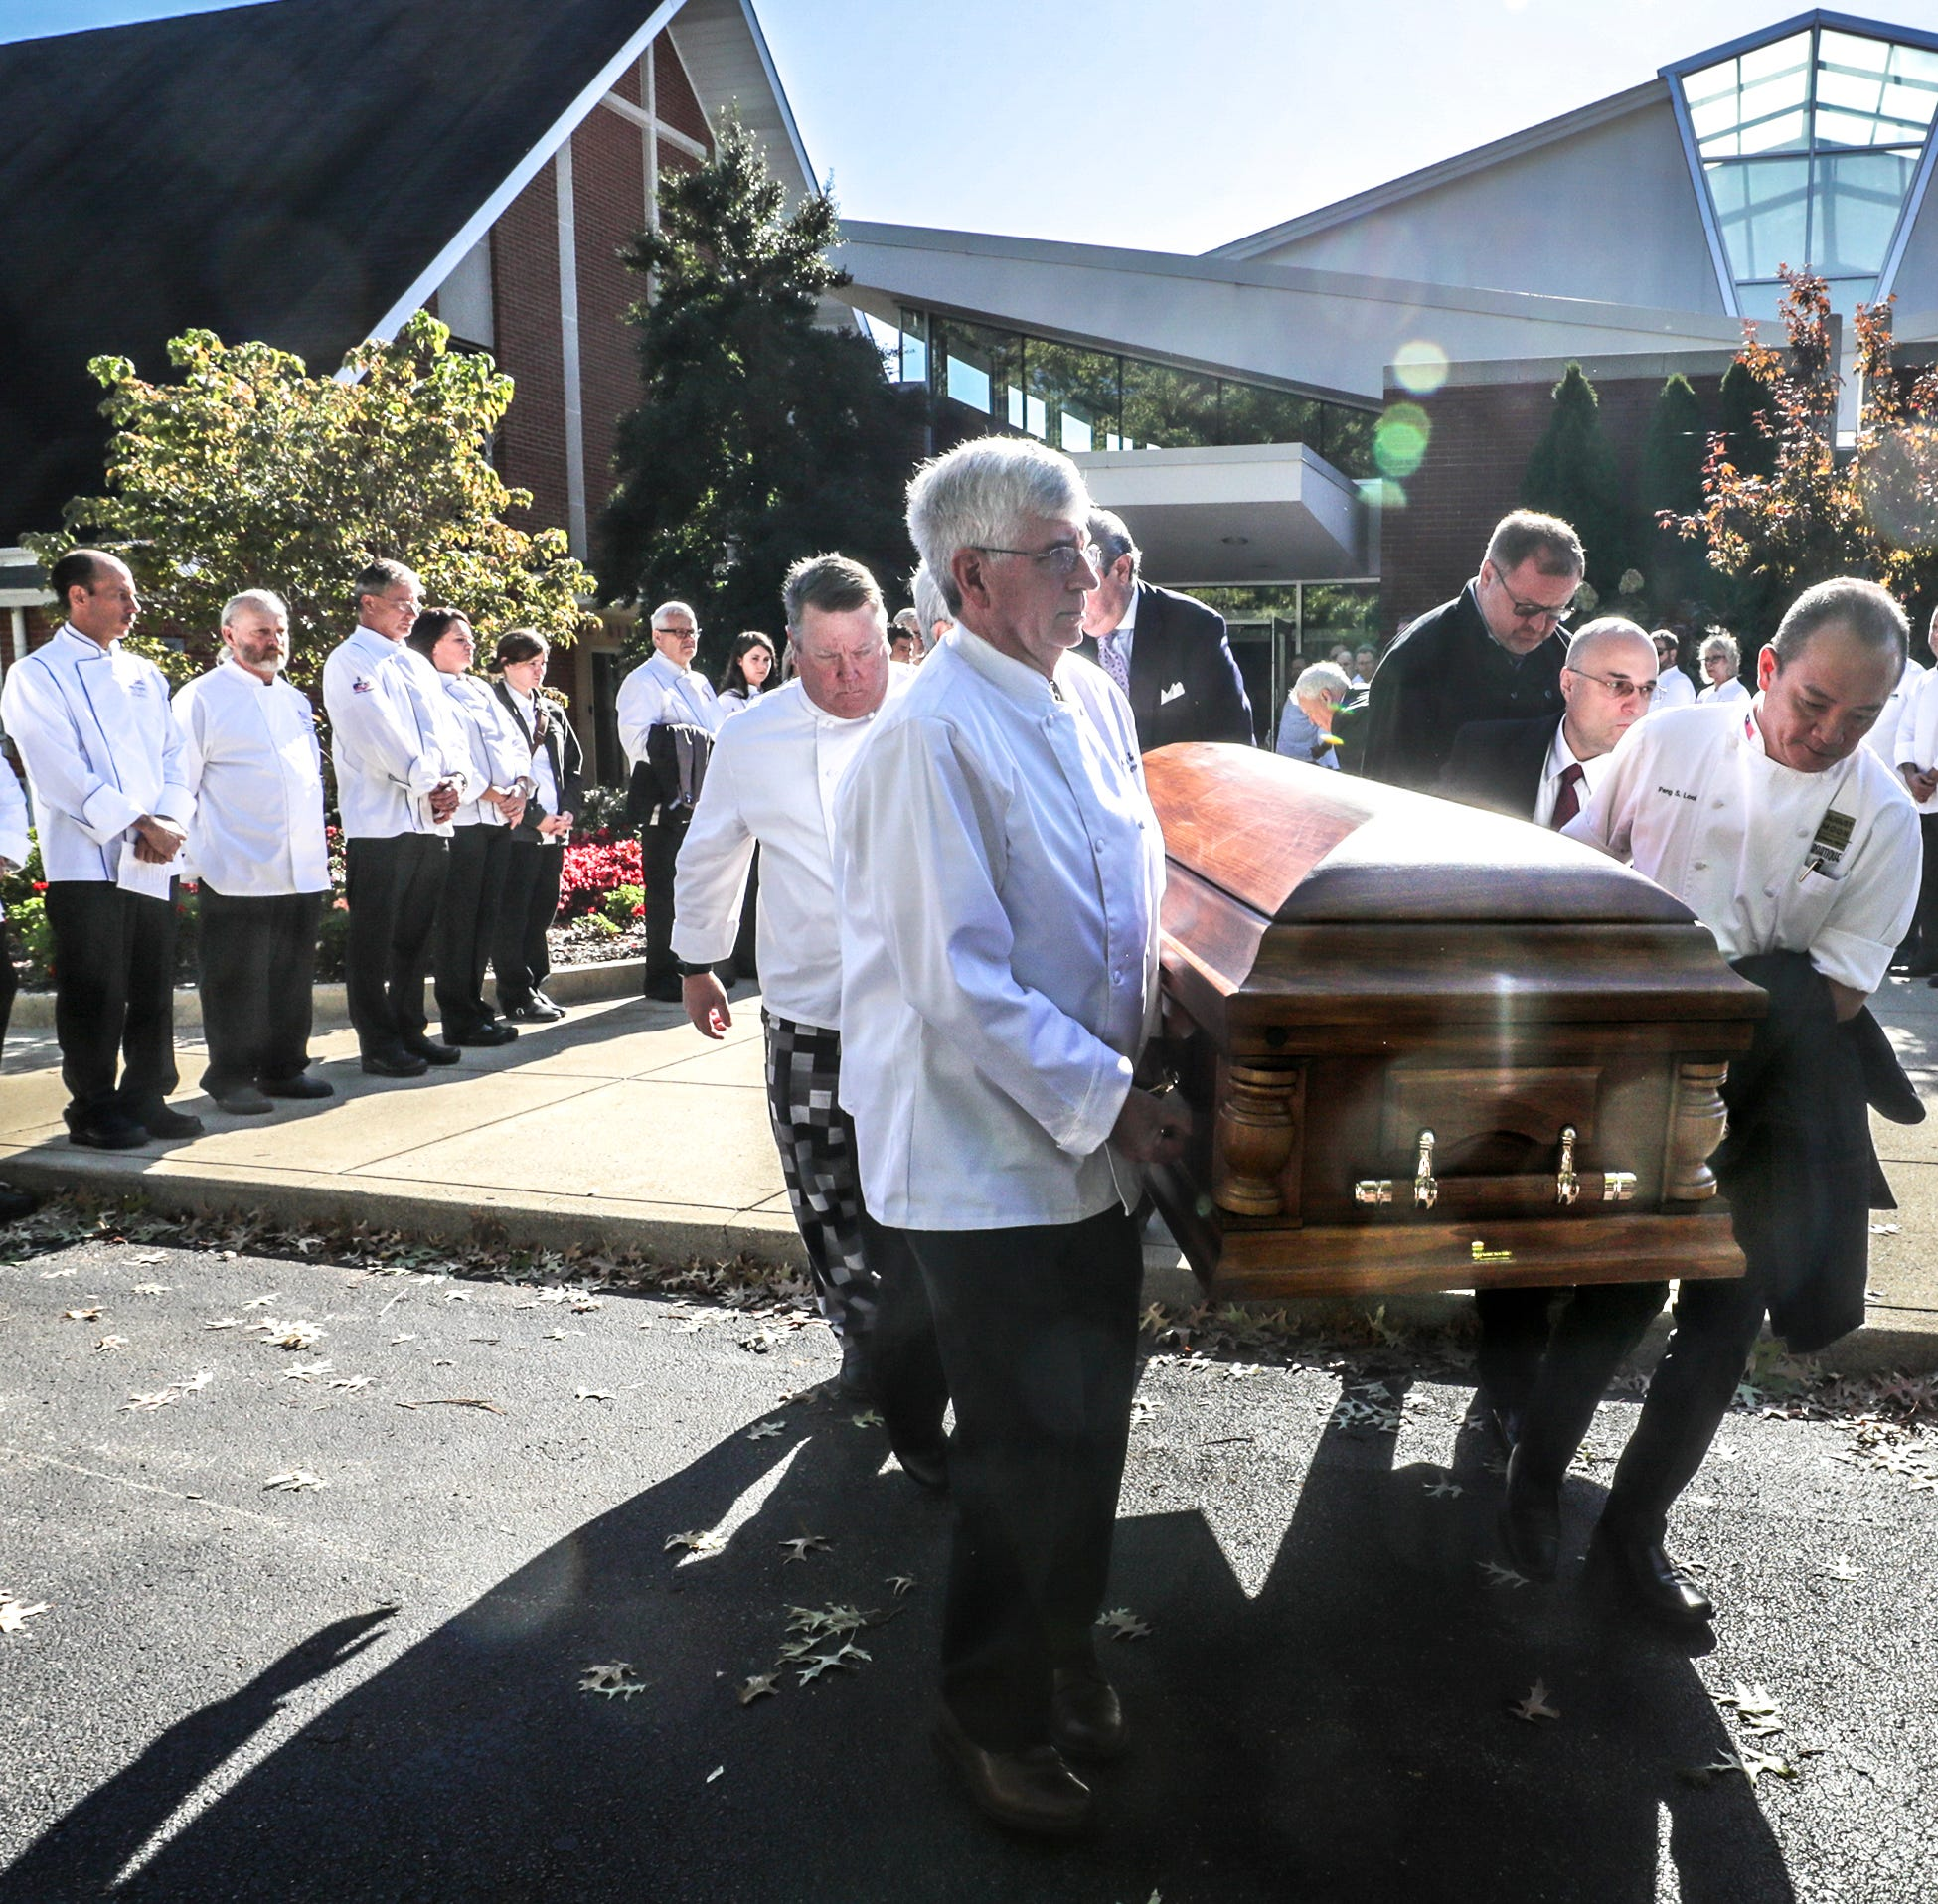 Community celebrates chef Dean Corbett's life at emotional funeral